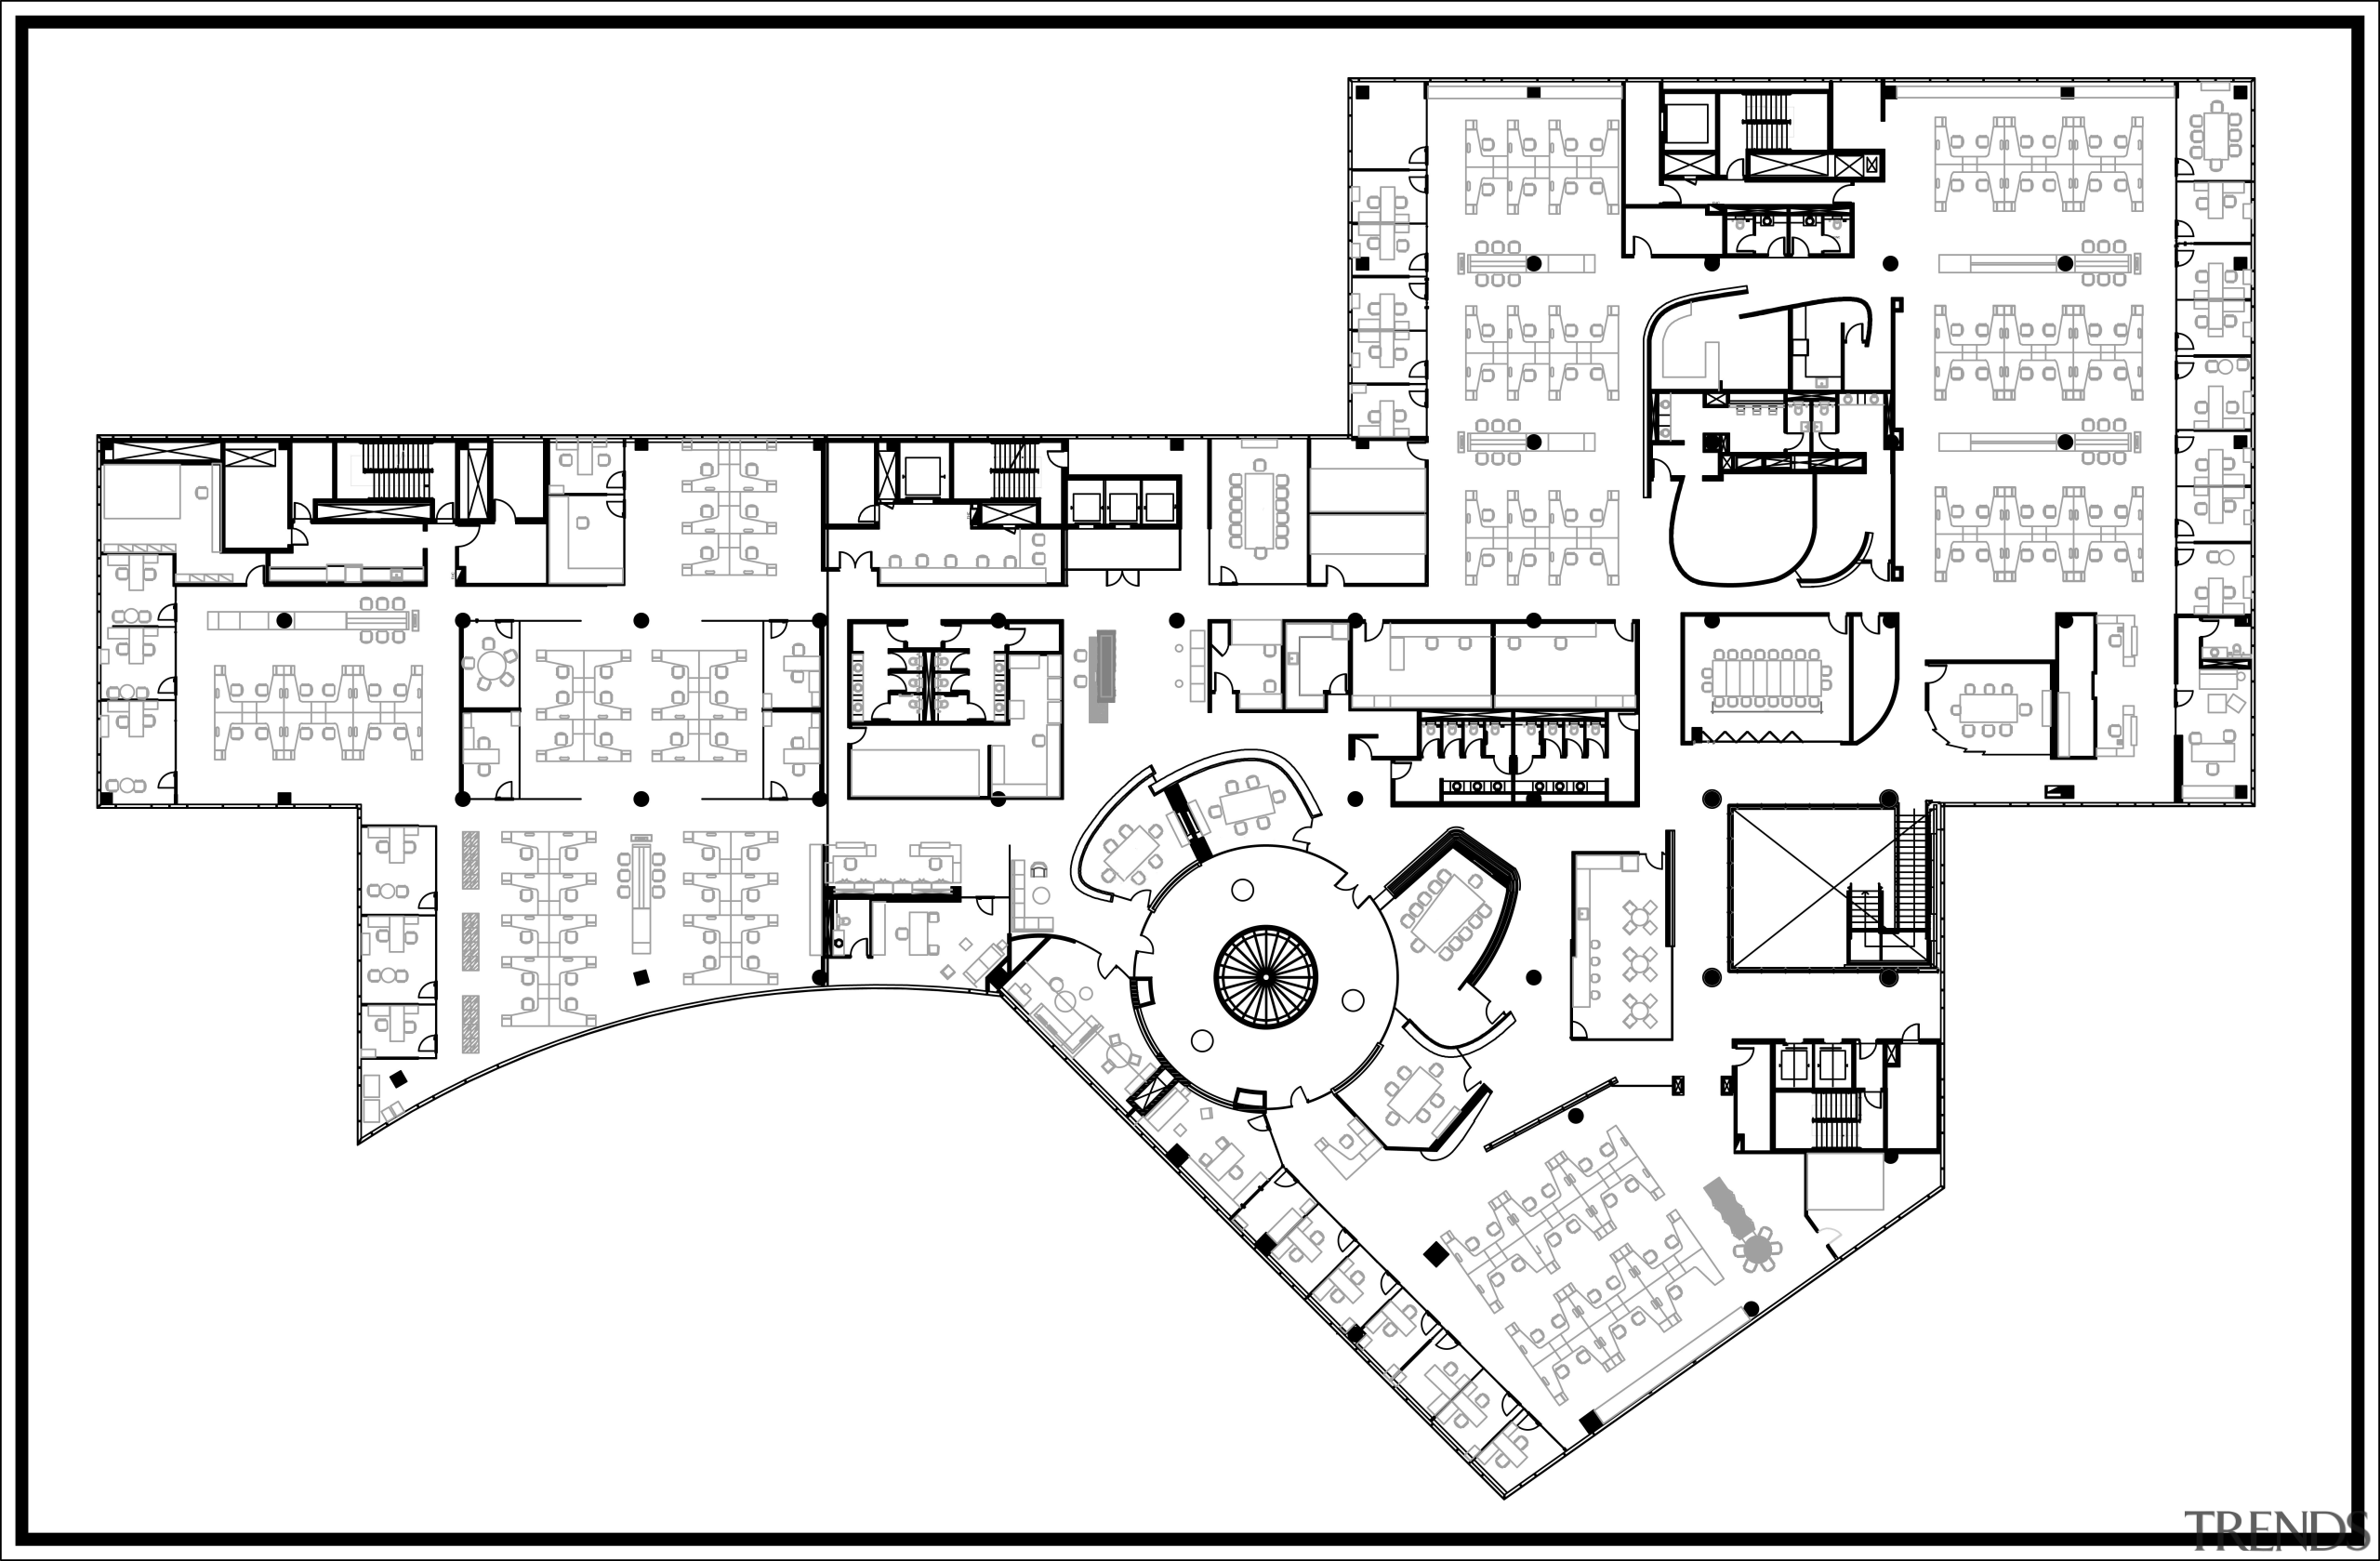 Floor plan. - Floor plan. - area | area, black and white, design, diagram, drawing, floor plan, font, line, plan, product design, technical drawing, text, white